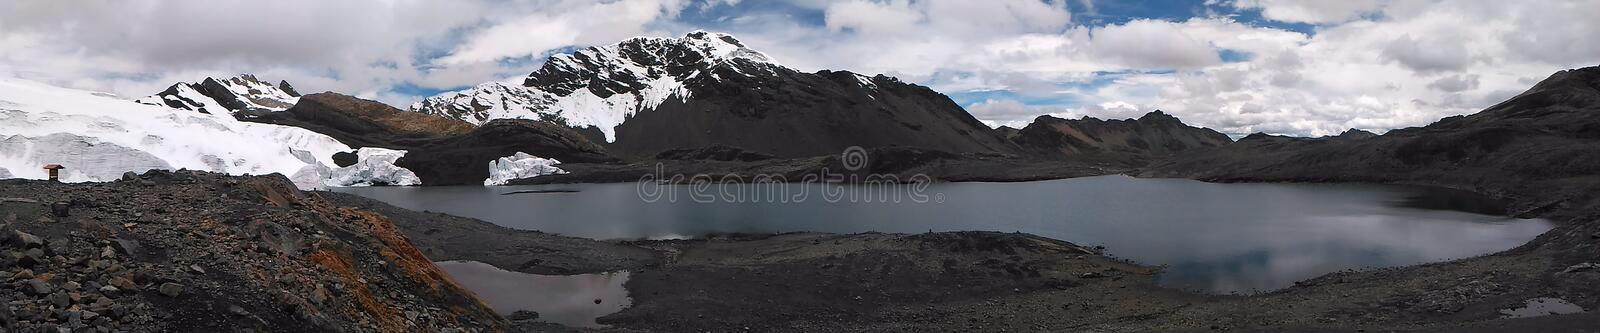 The Pastoruri glacier is a cirque glacier, located in the southern part of the Cordillera Blanca, part of the Andes mountain range. In Northern Peru in the royalty free stock photography